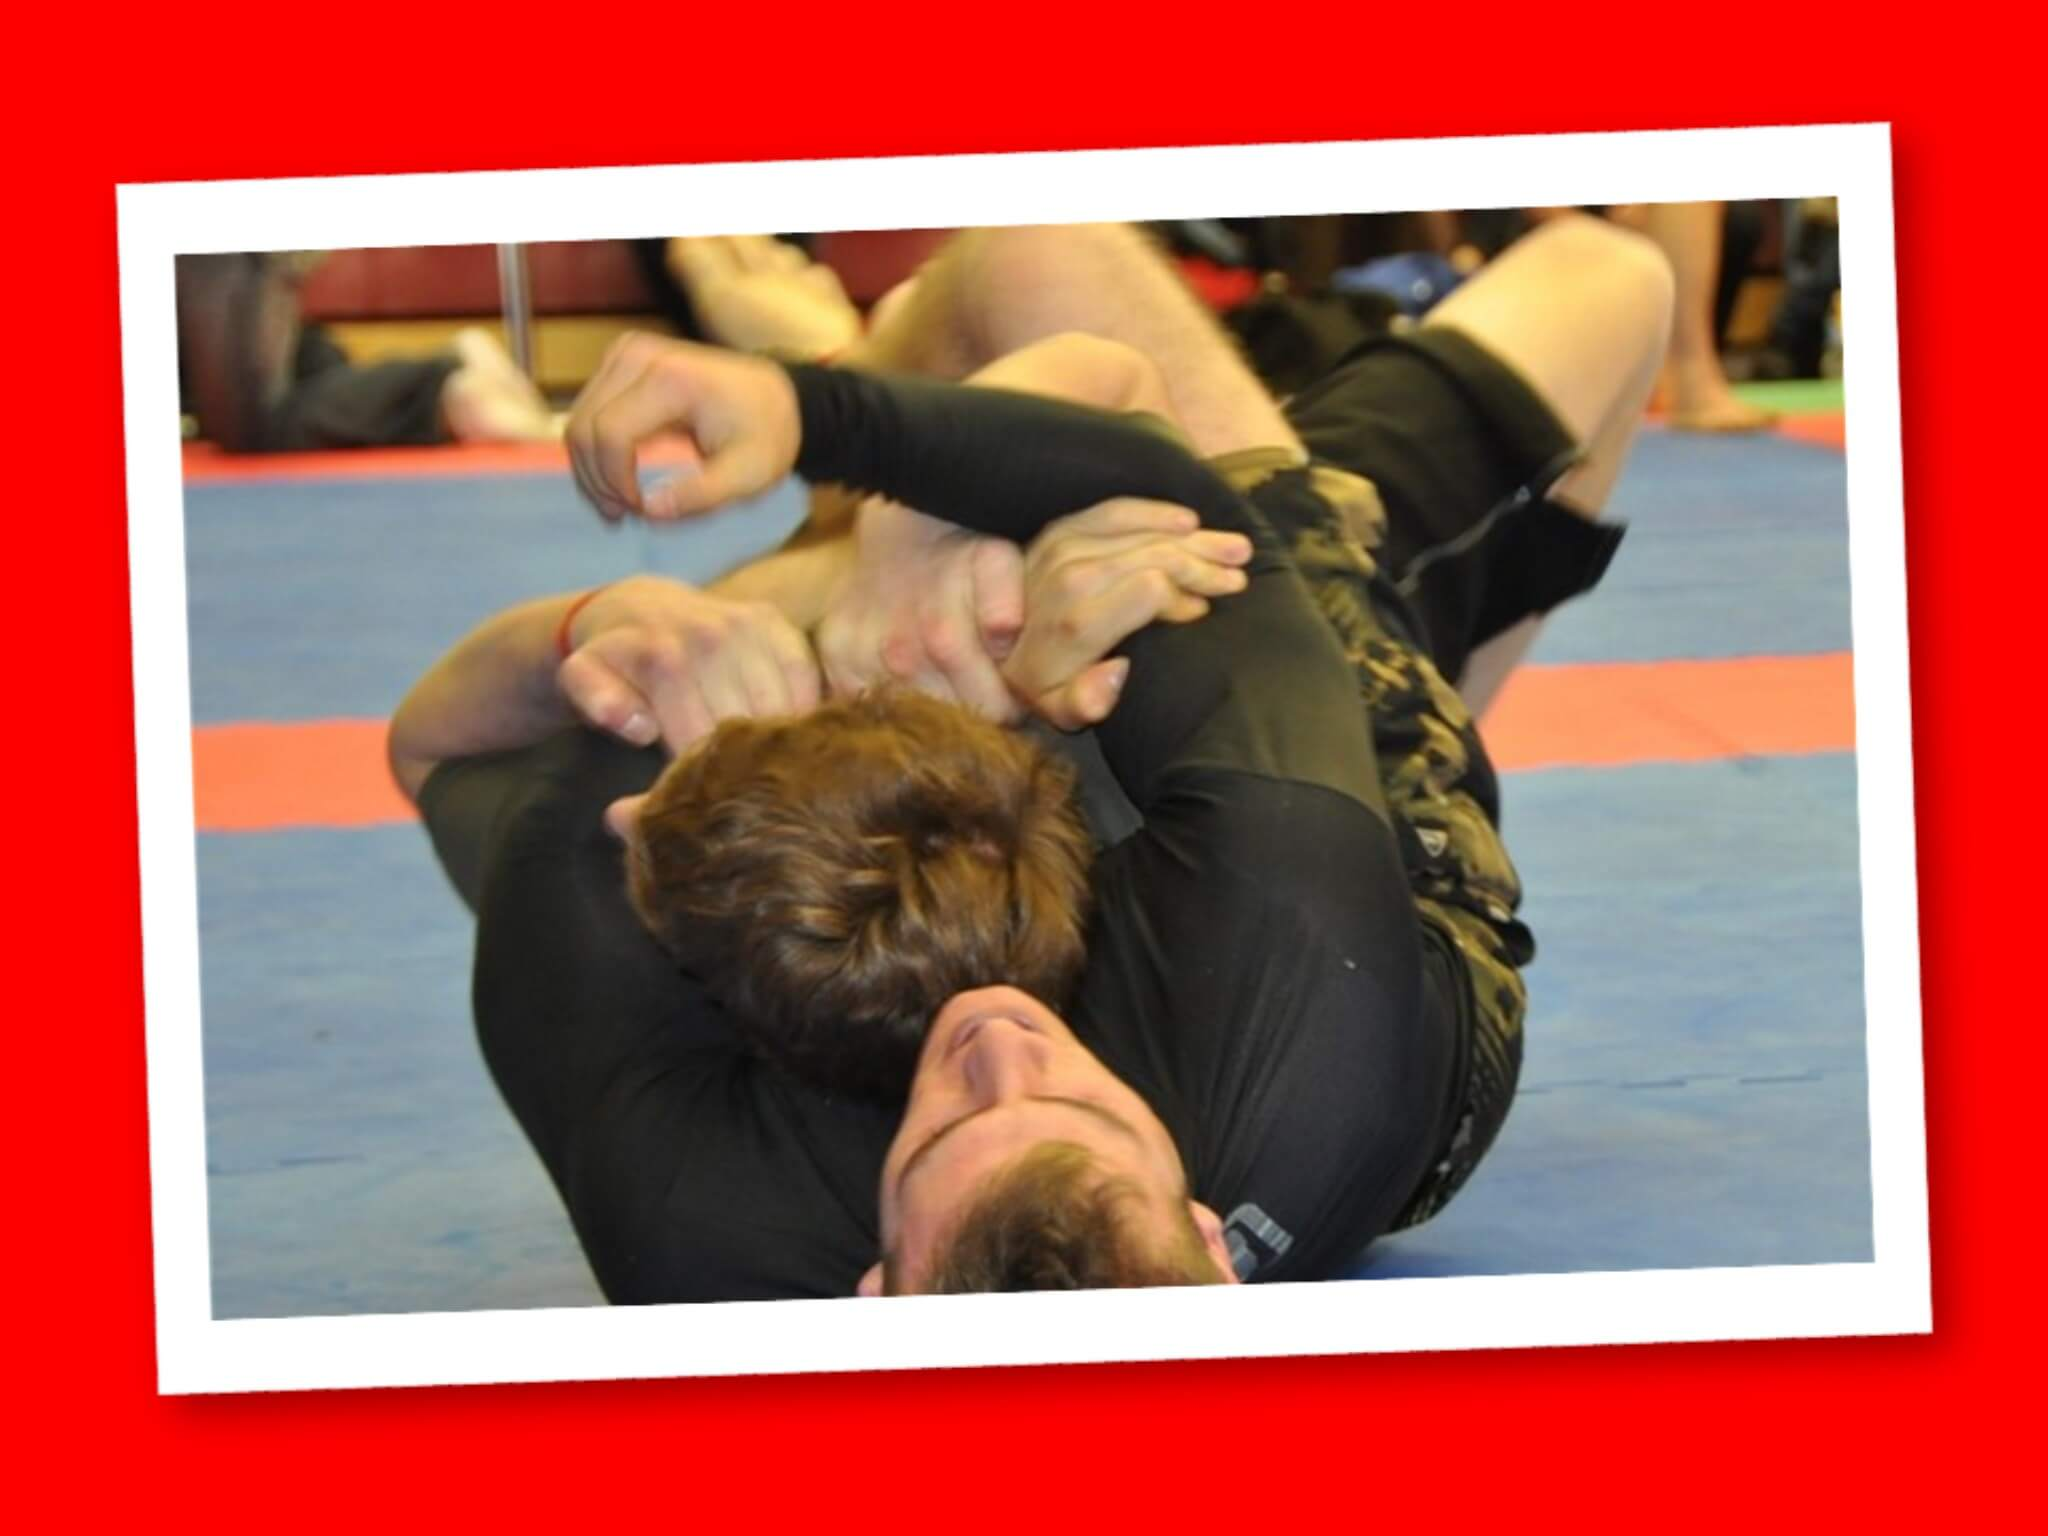 Grappling: il modello prestativo del submission wrestling